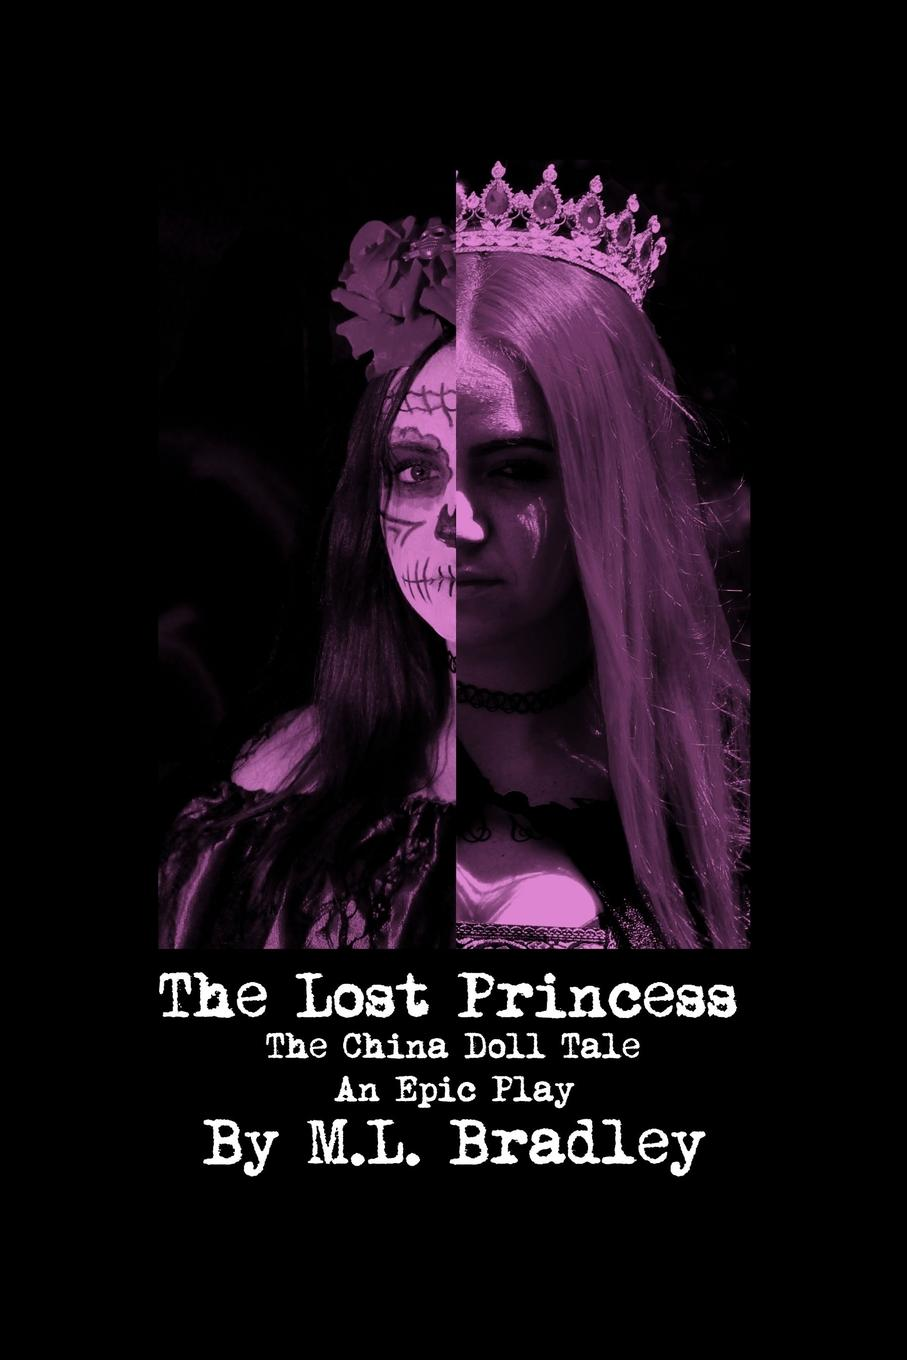 M. L. Bradley The Lost Princess. The China Doll Tale - An Epic Play the lost king